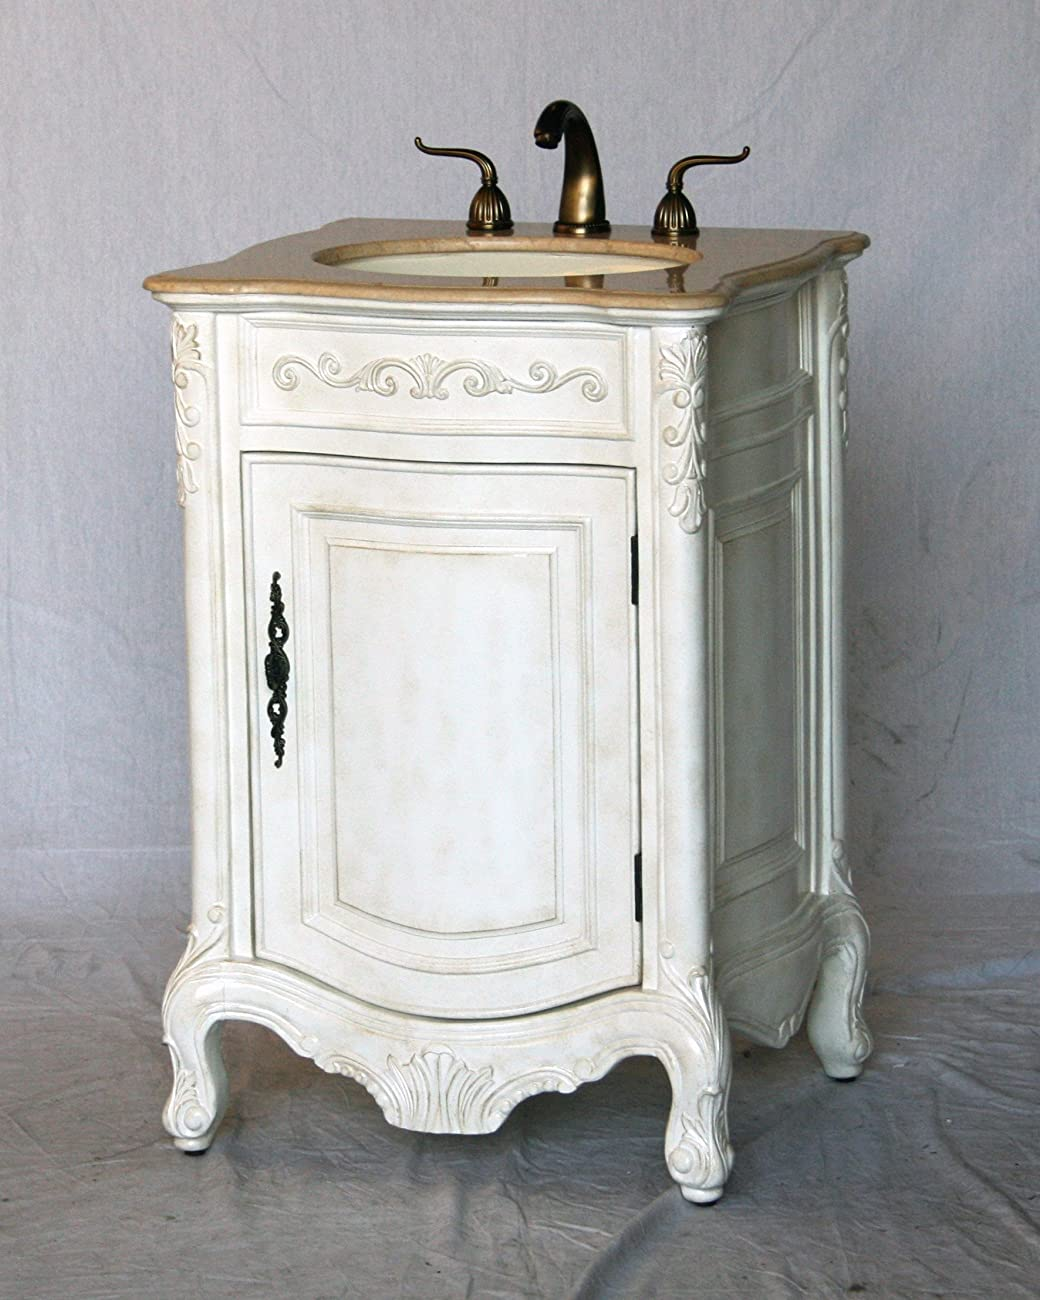 24 inch antique style single sink bathroom vanity model 2232 aw for Bathroom vanities vintage style